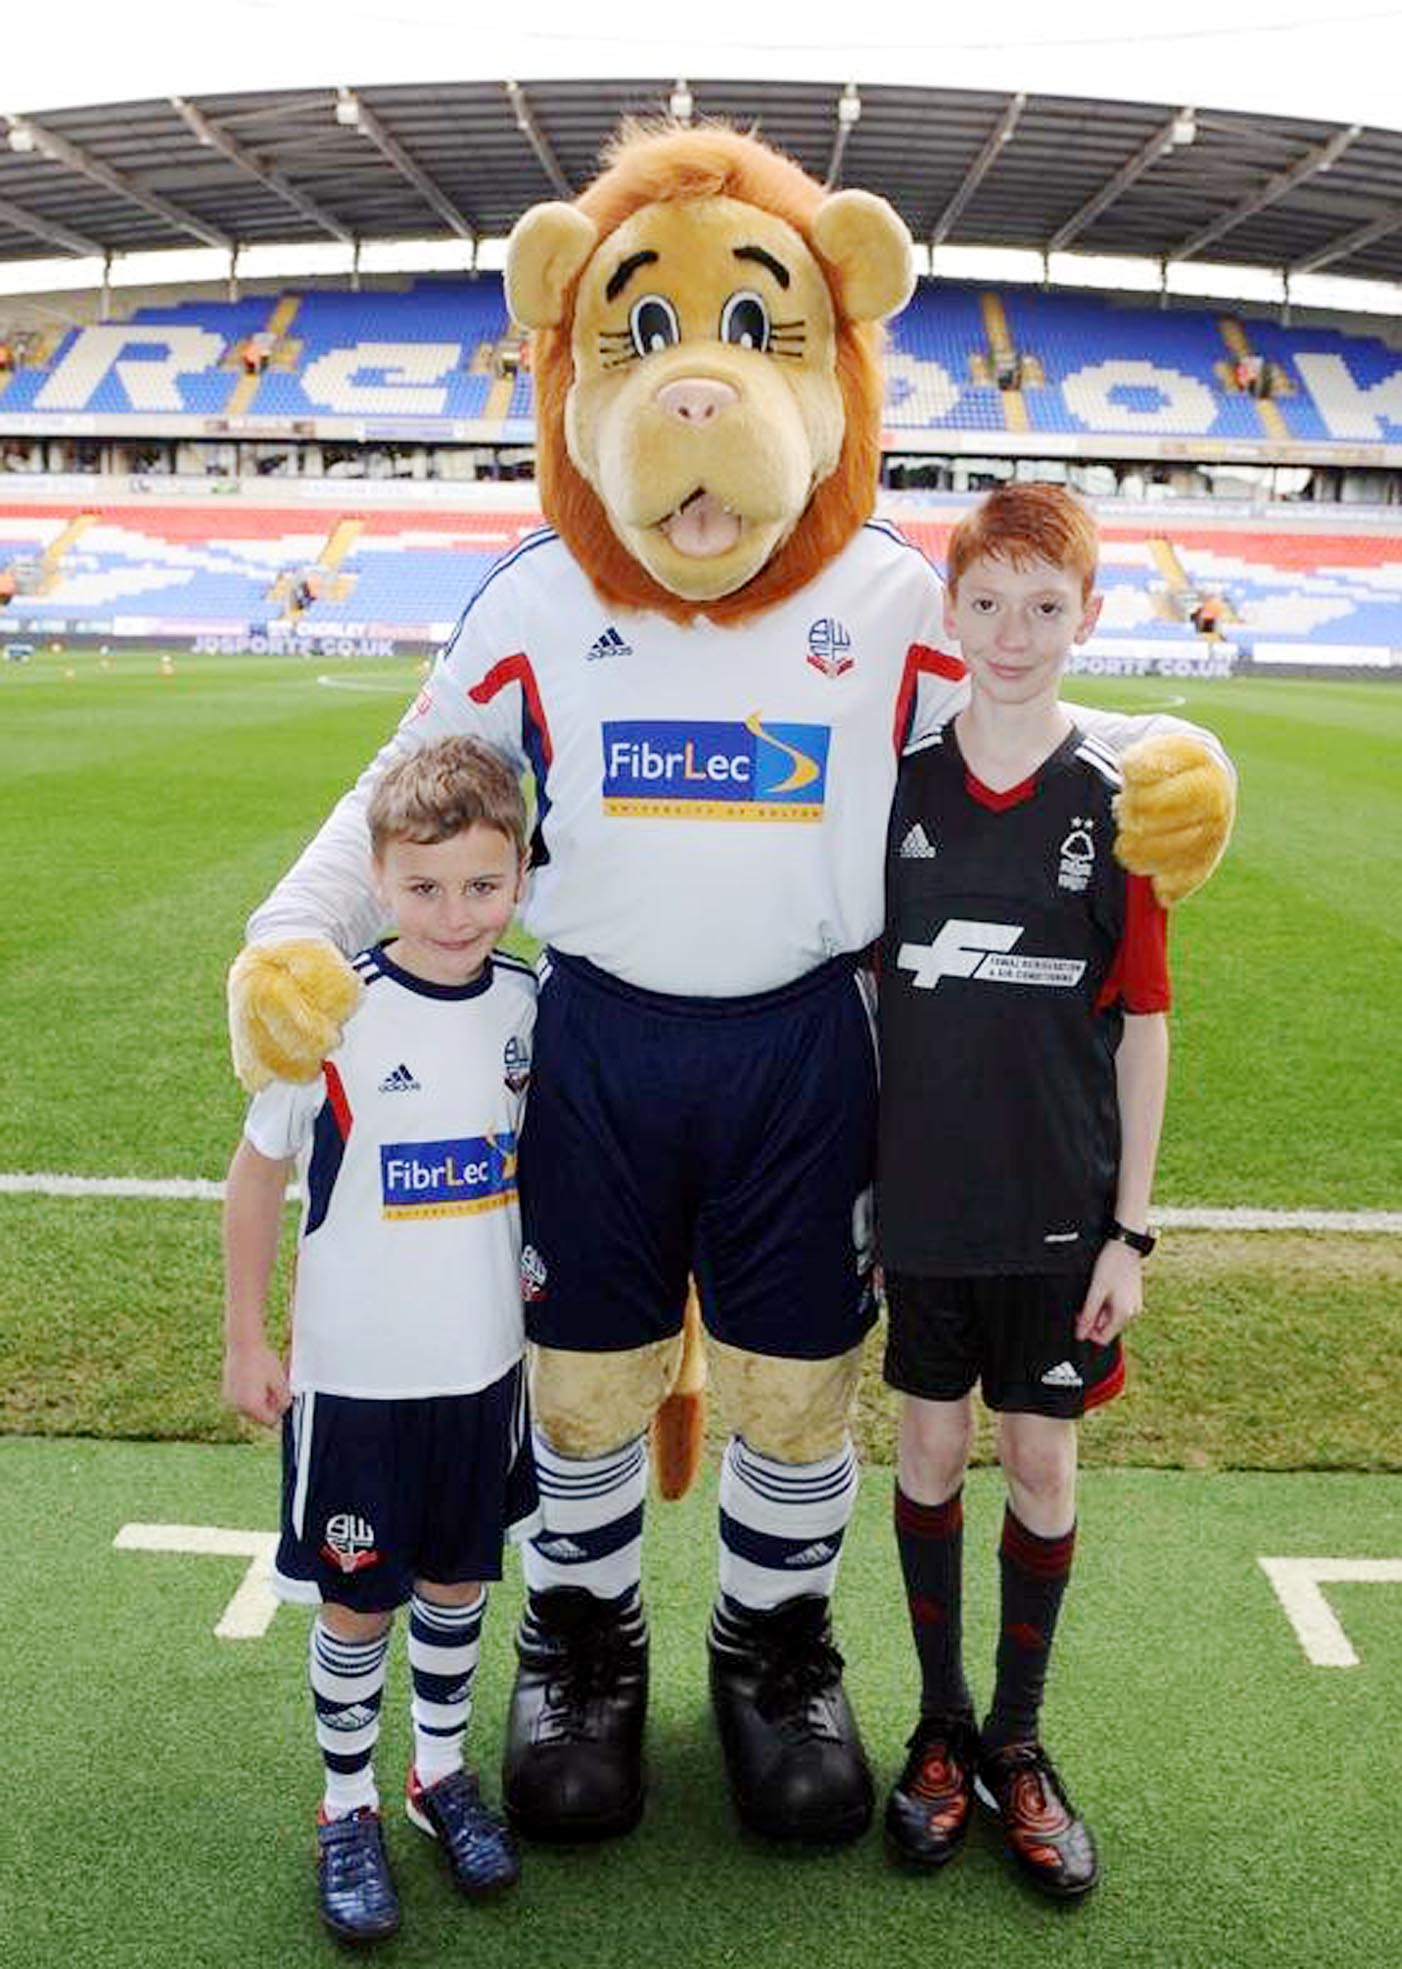 Young fan leads out Bolton Wanderers after winning competition at shopping centre